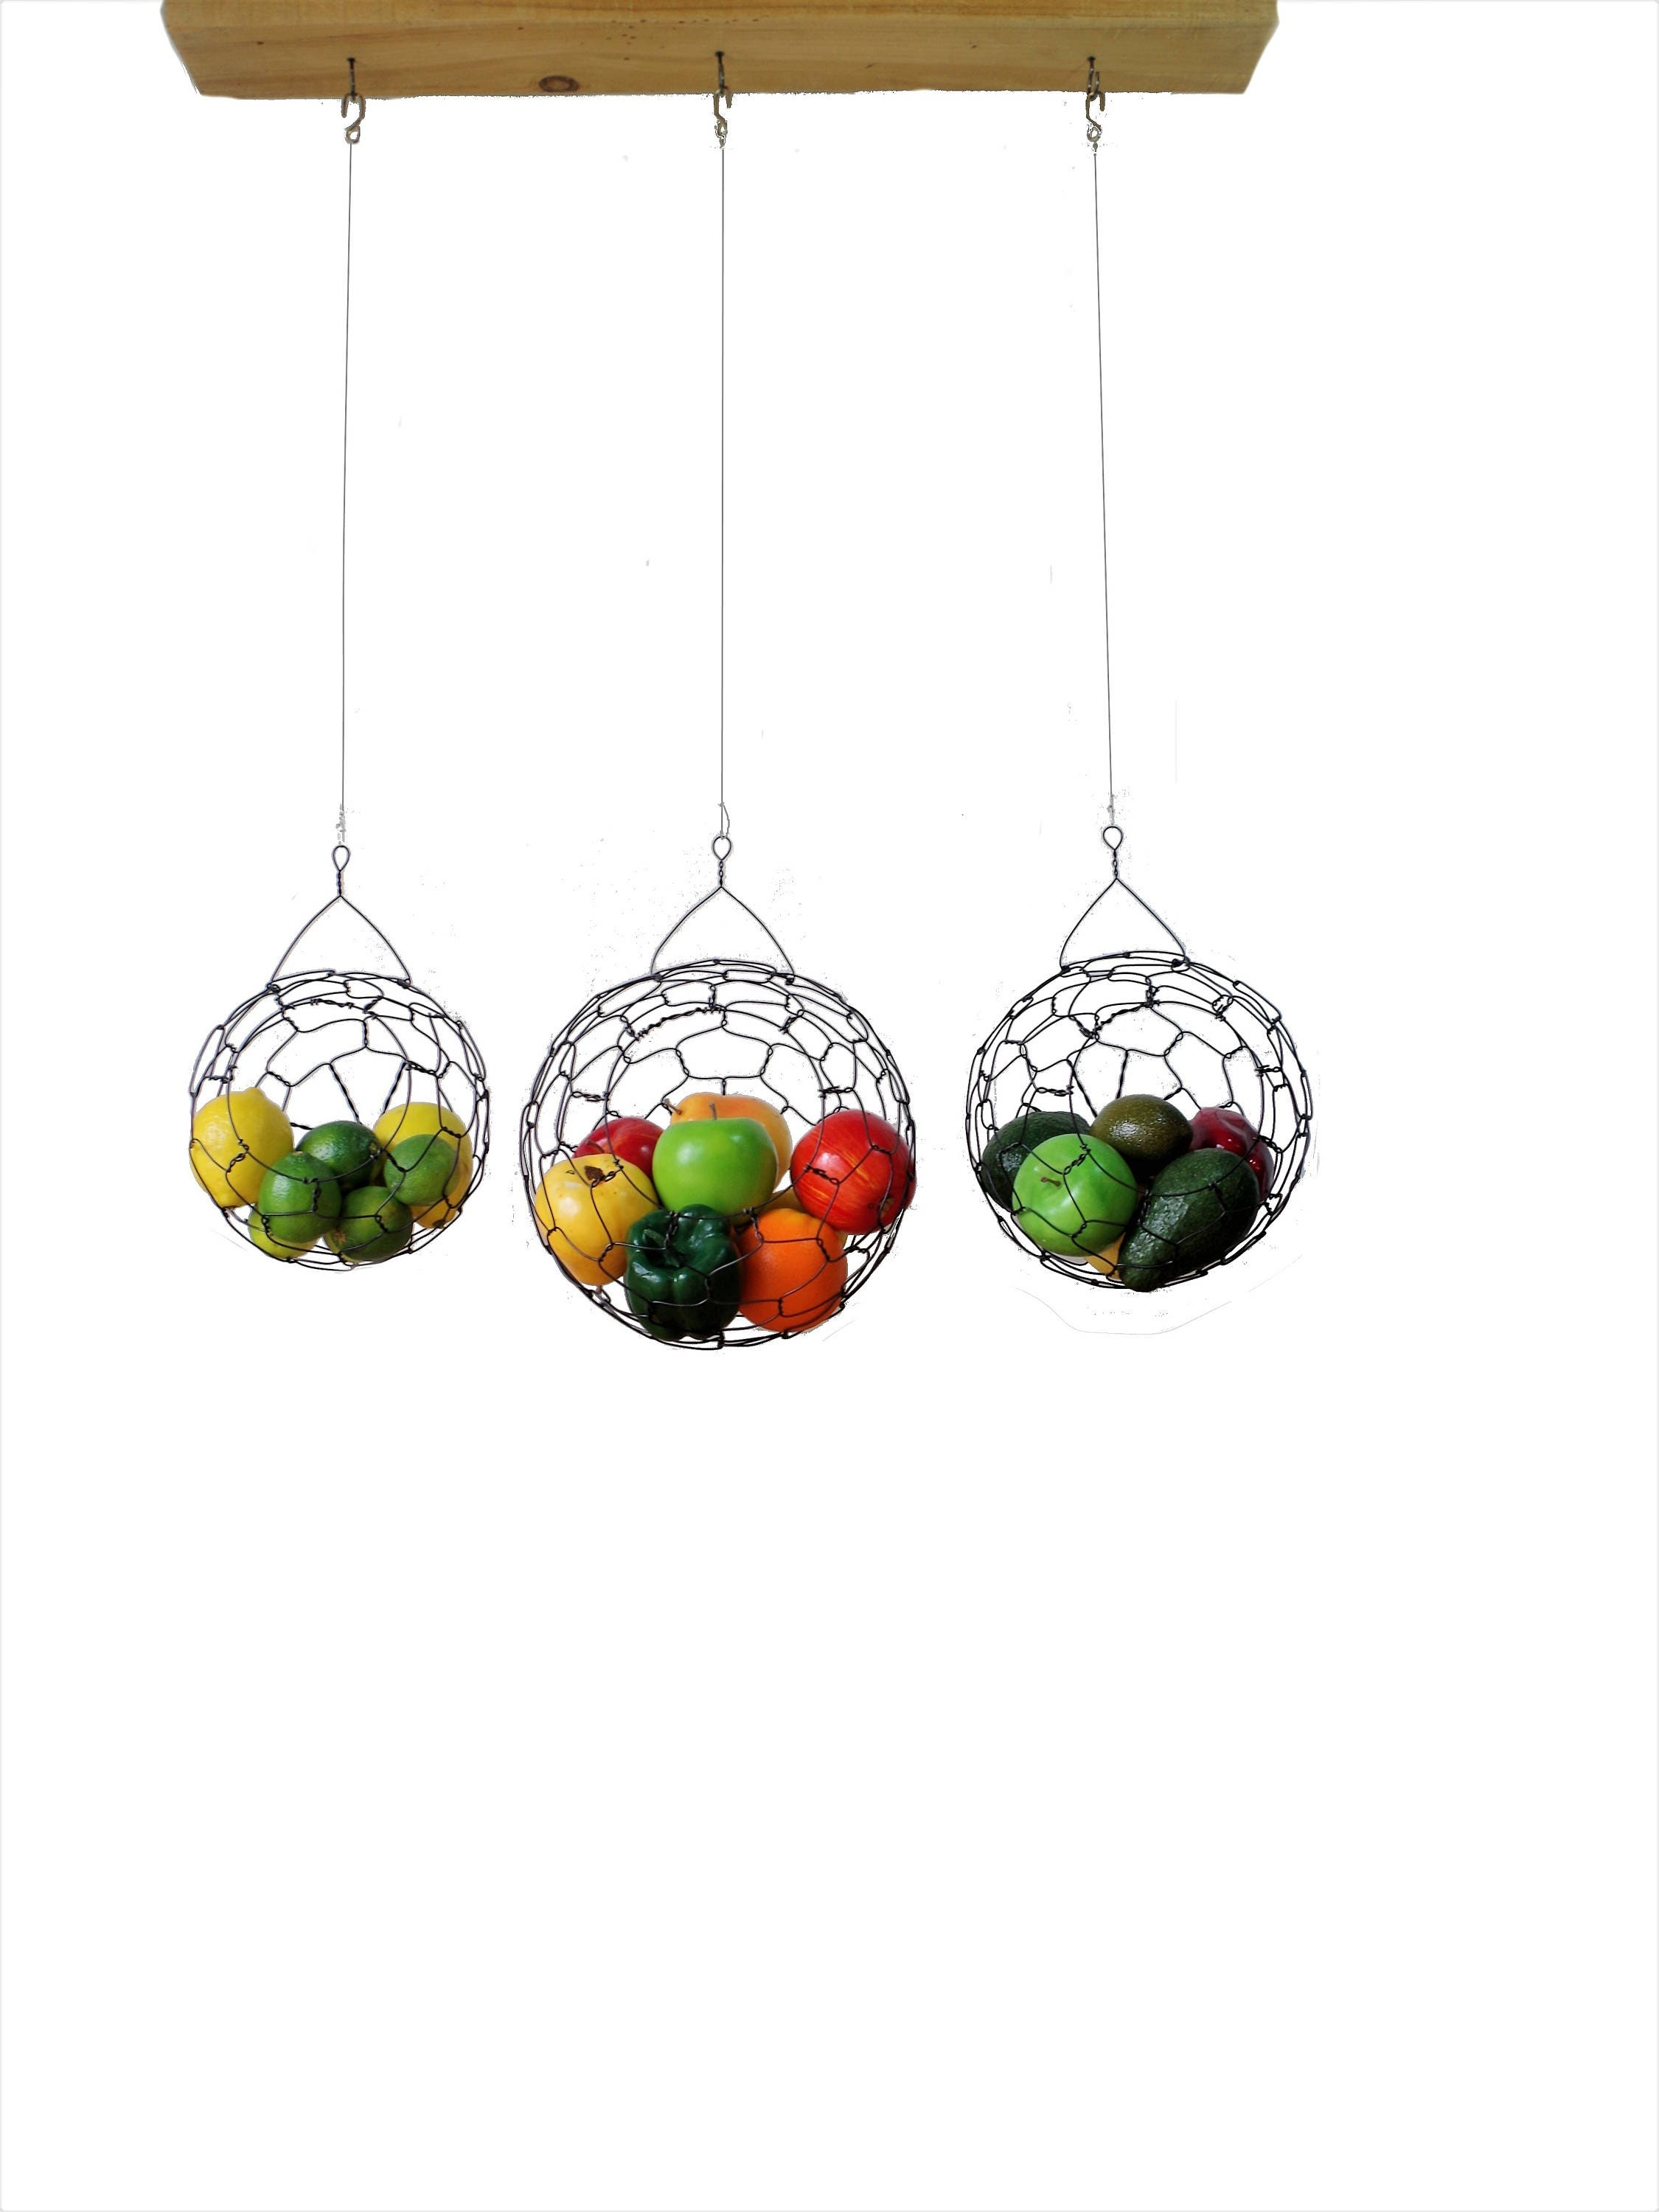 Hanging Wire Baskets, Wire Basket Set, Fruit basket, Sphere, Country Style, Rustic